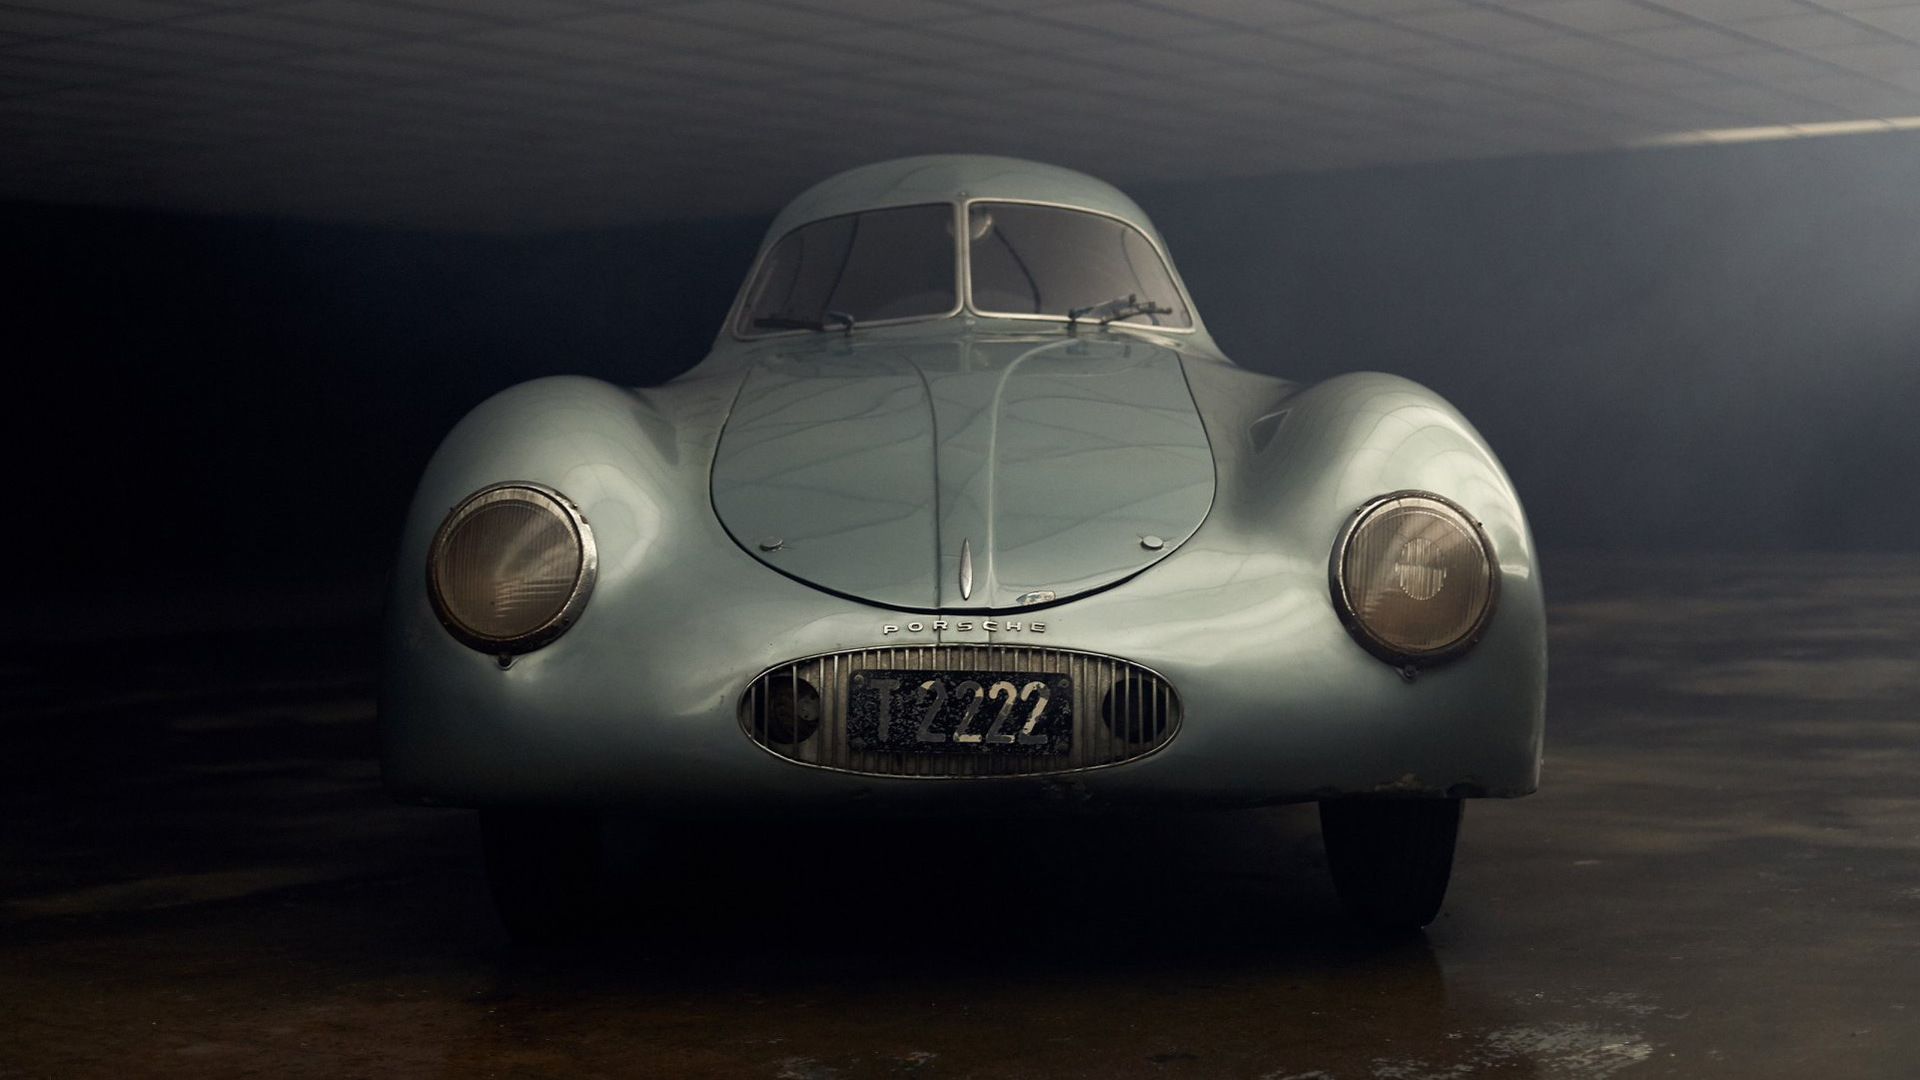 1939 Porsche Type 64 fails to sell due to auction snafu